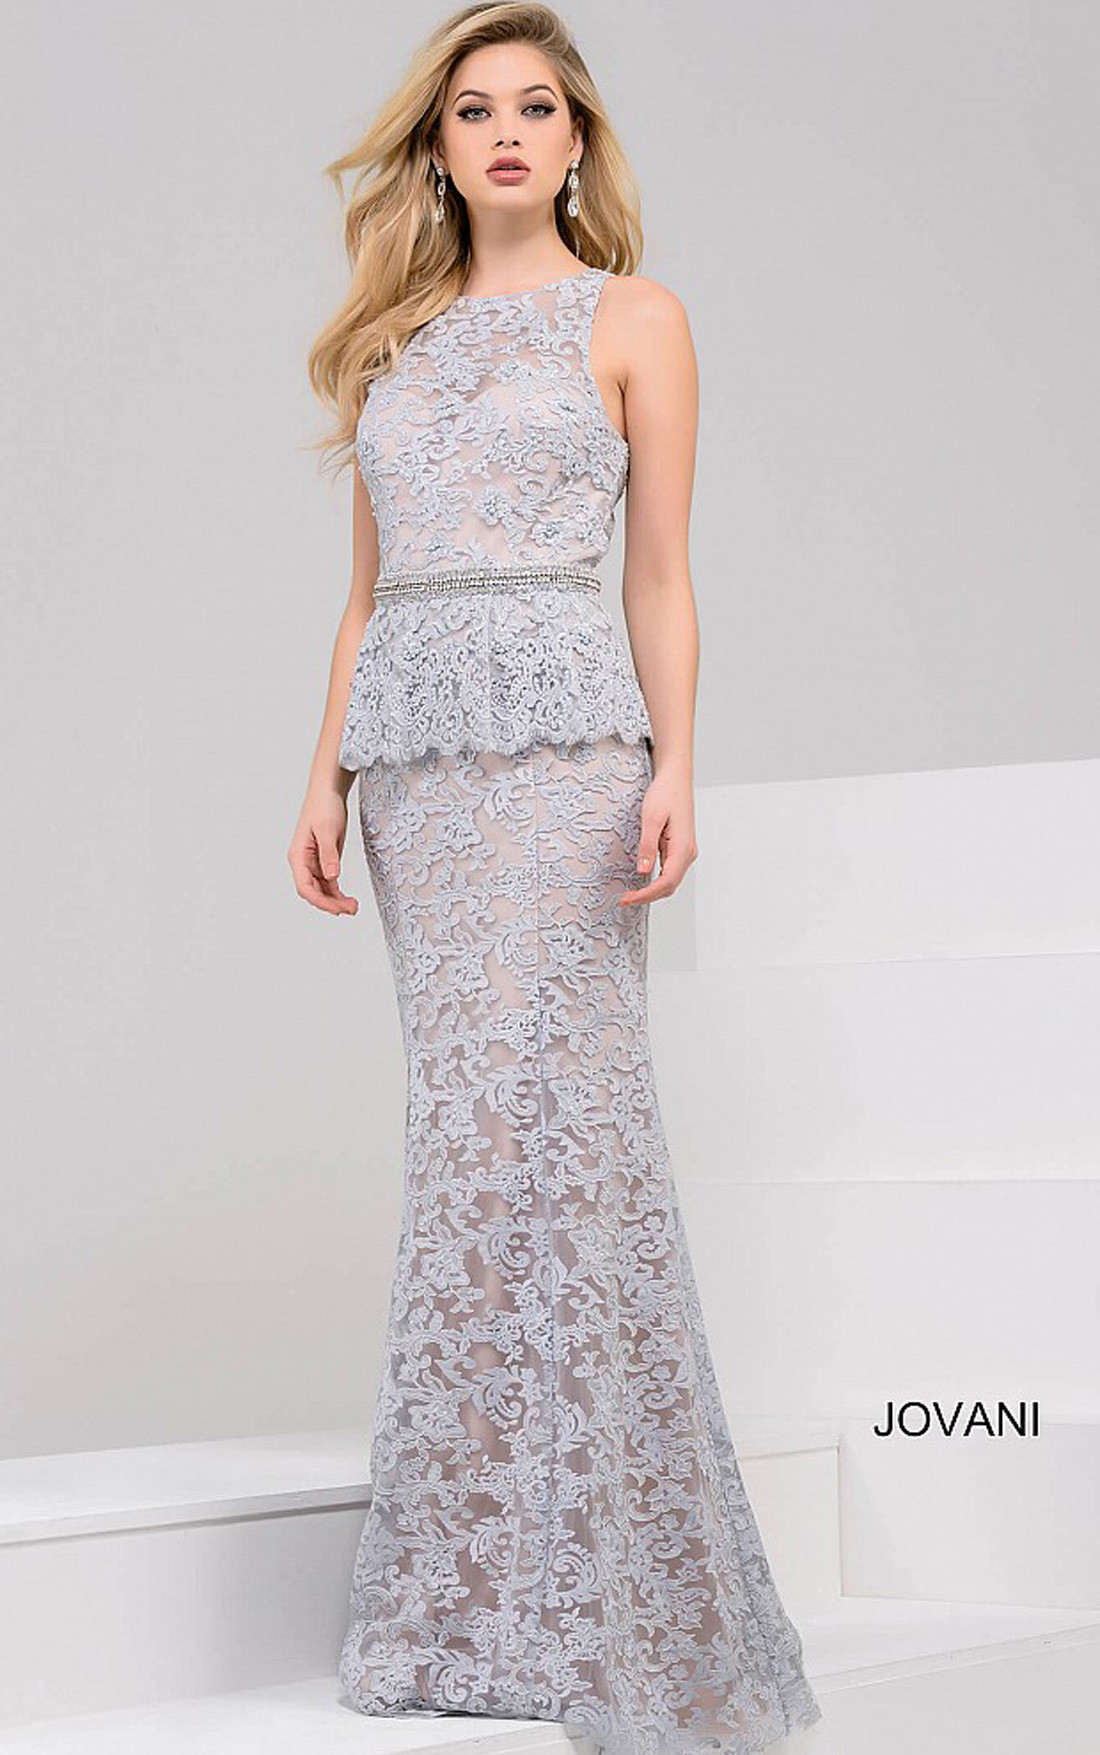 e018abf86a Jovani - Blue Sleeveless Peplum Mermaid Dress